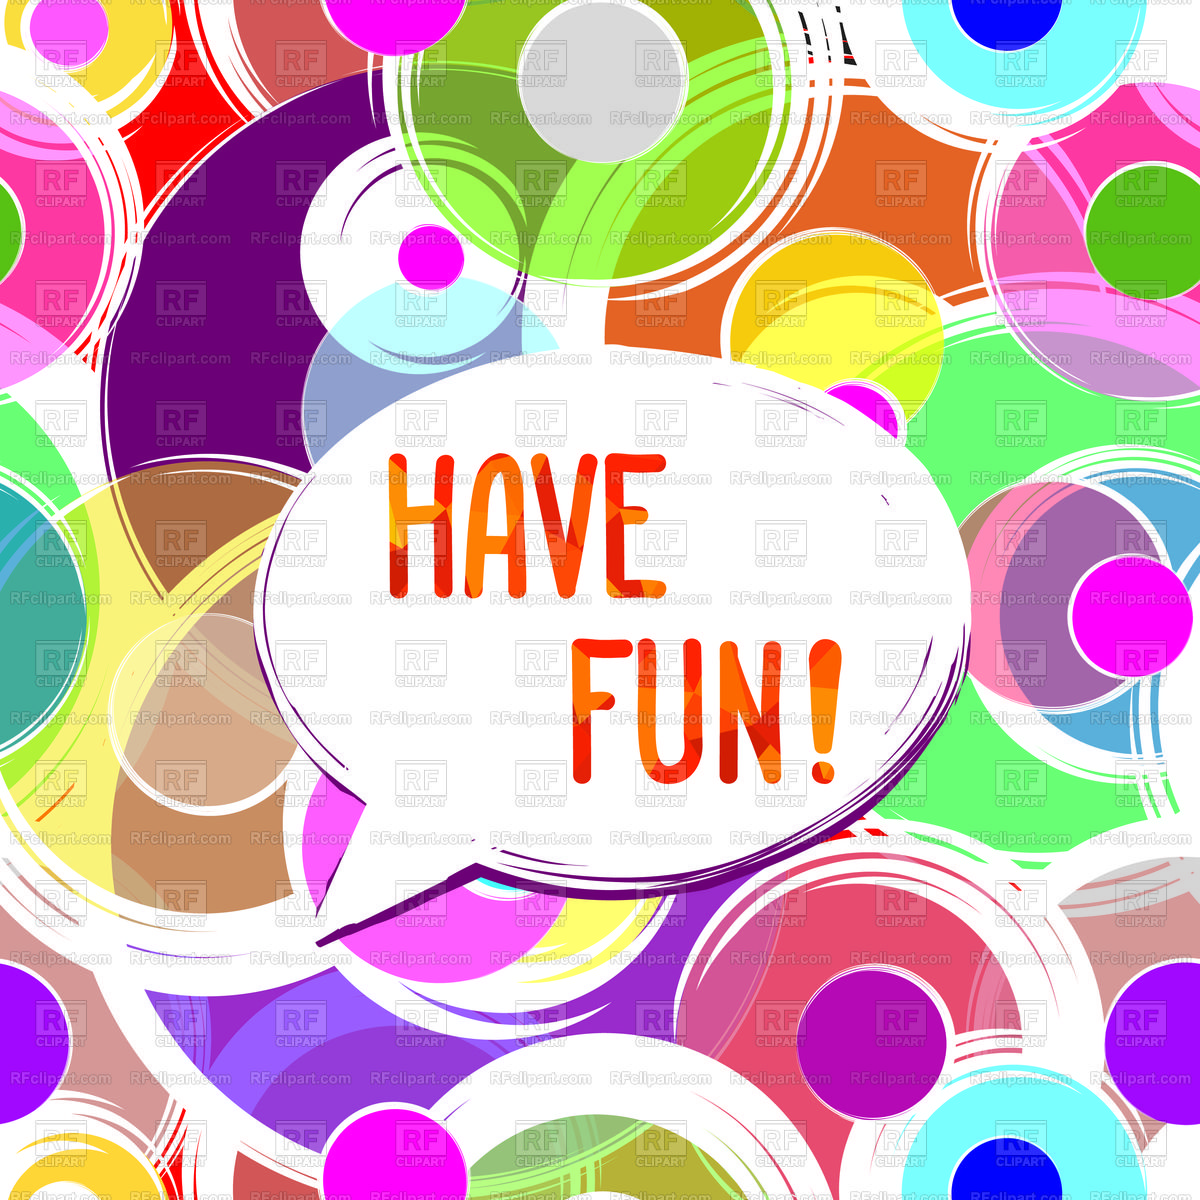 Have fun speech bubble on motley background Stock Vector Image.